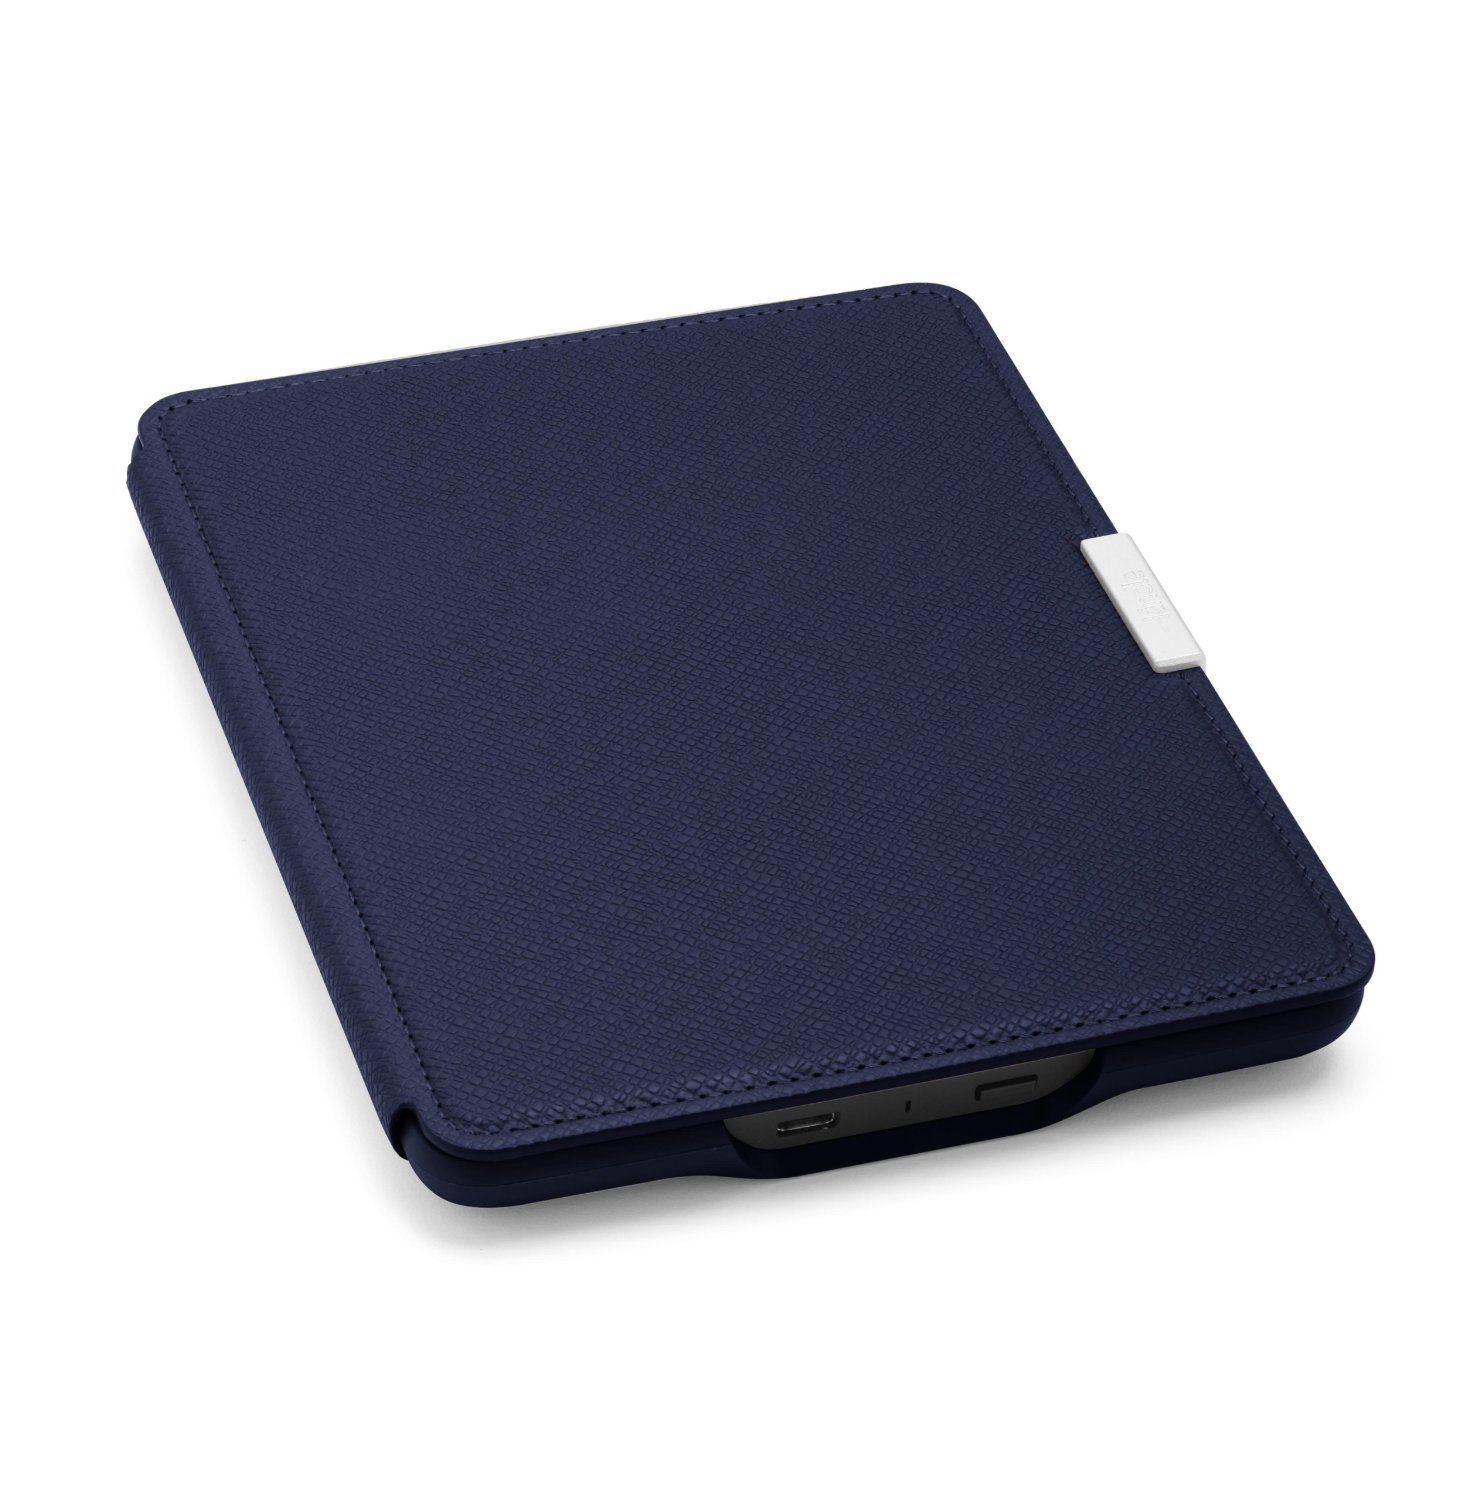 Чехол Leather Cover для Amazon Kindle Paperwhite Ink Blue (Темно-синий). Фото N4